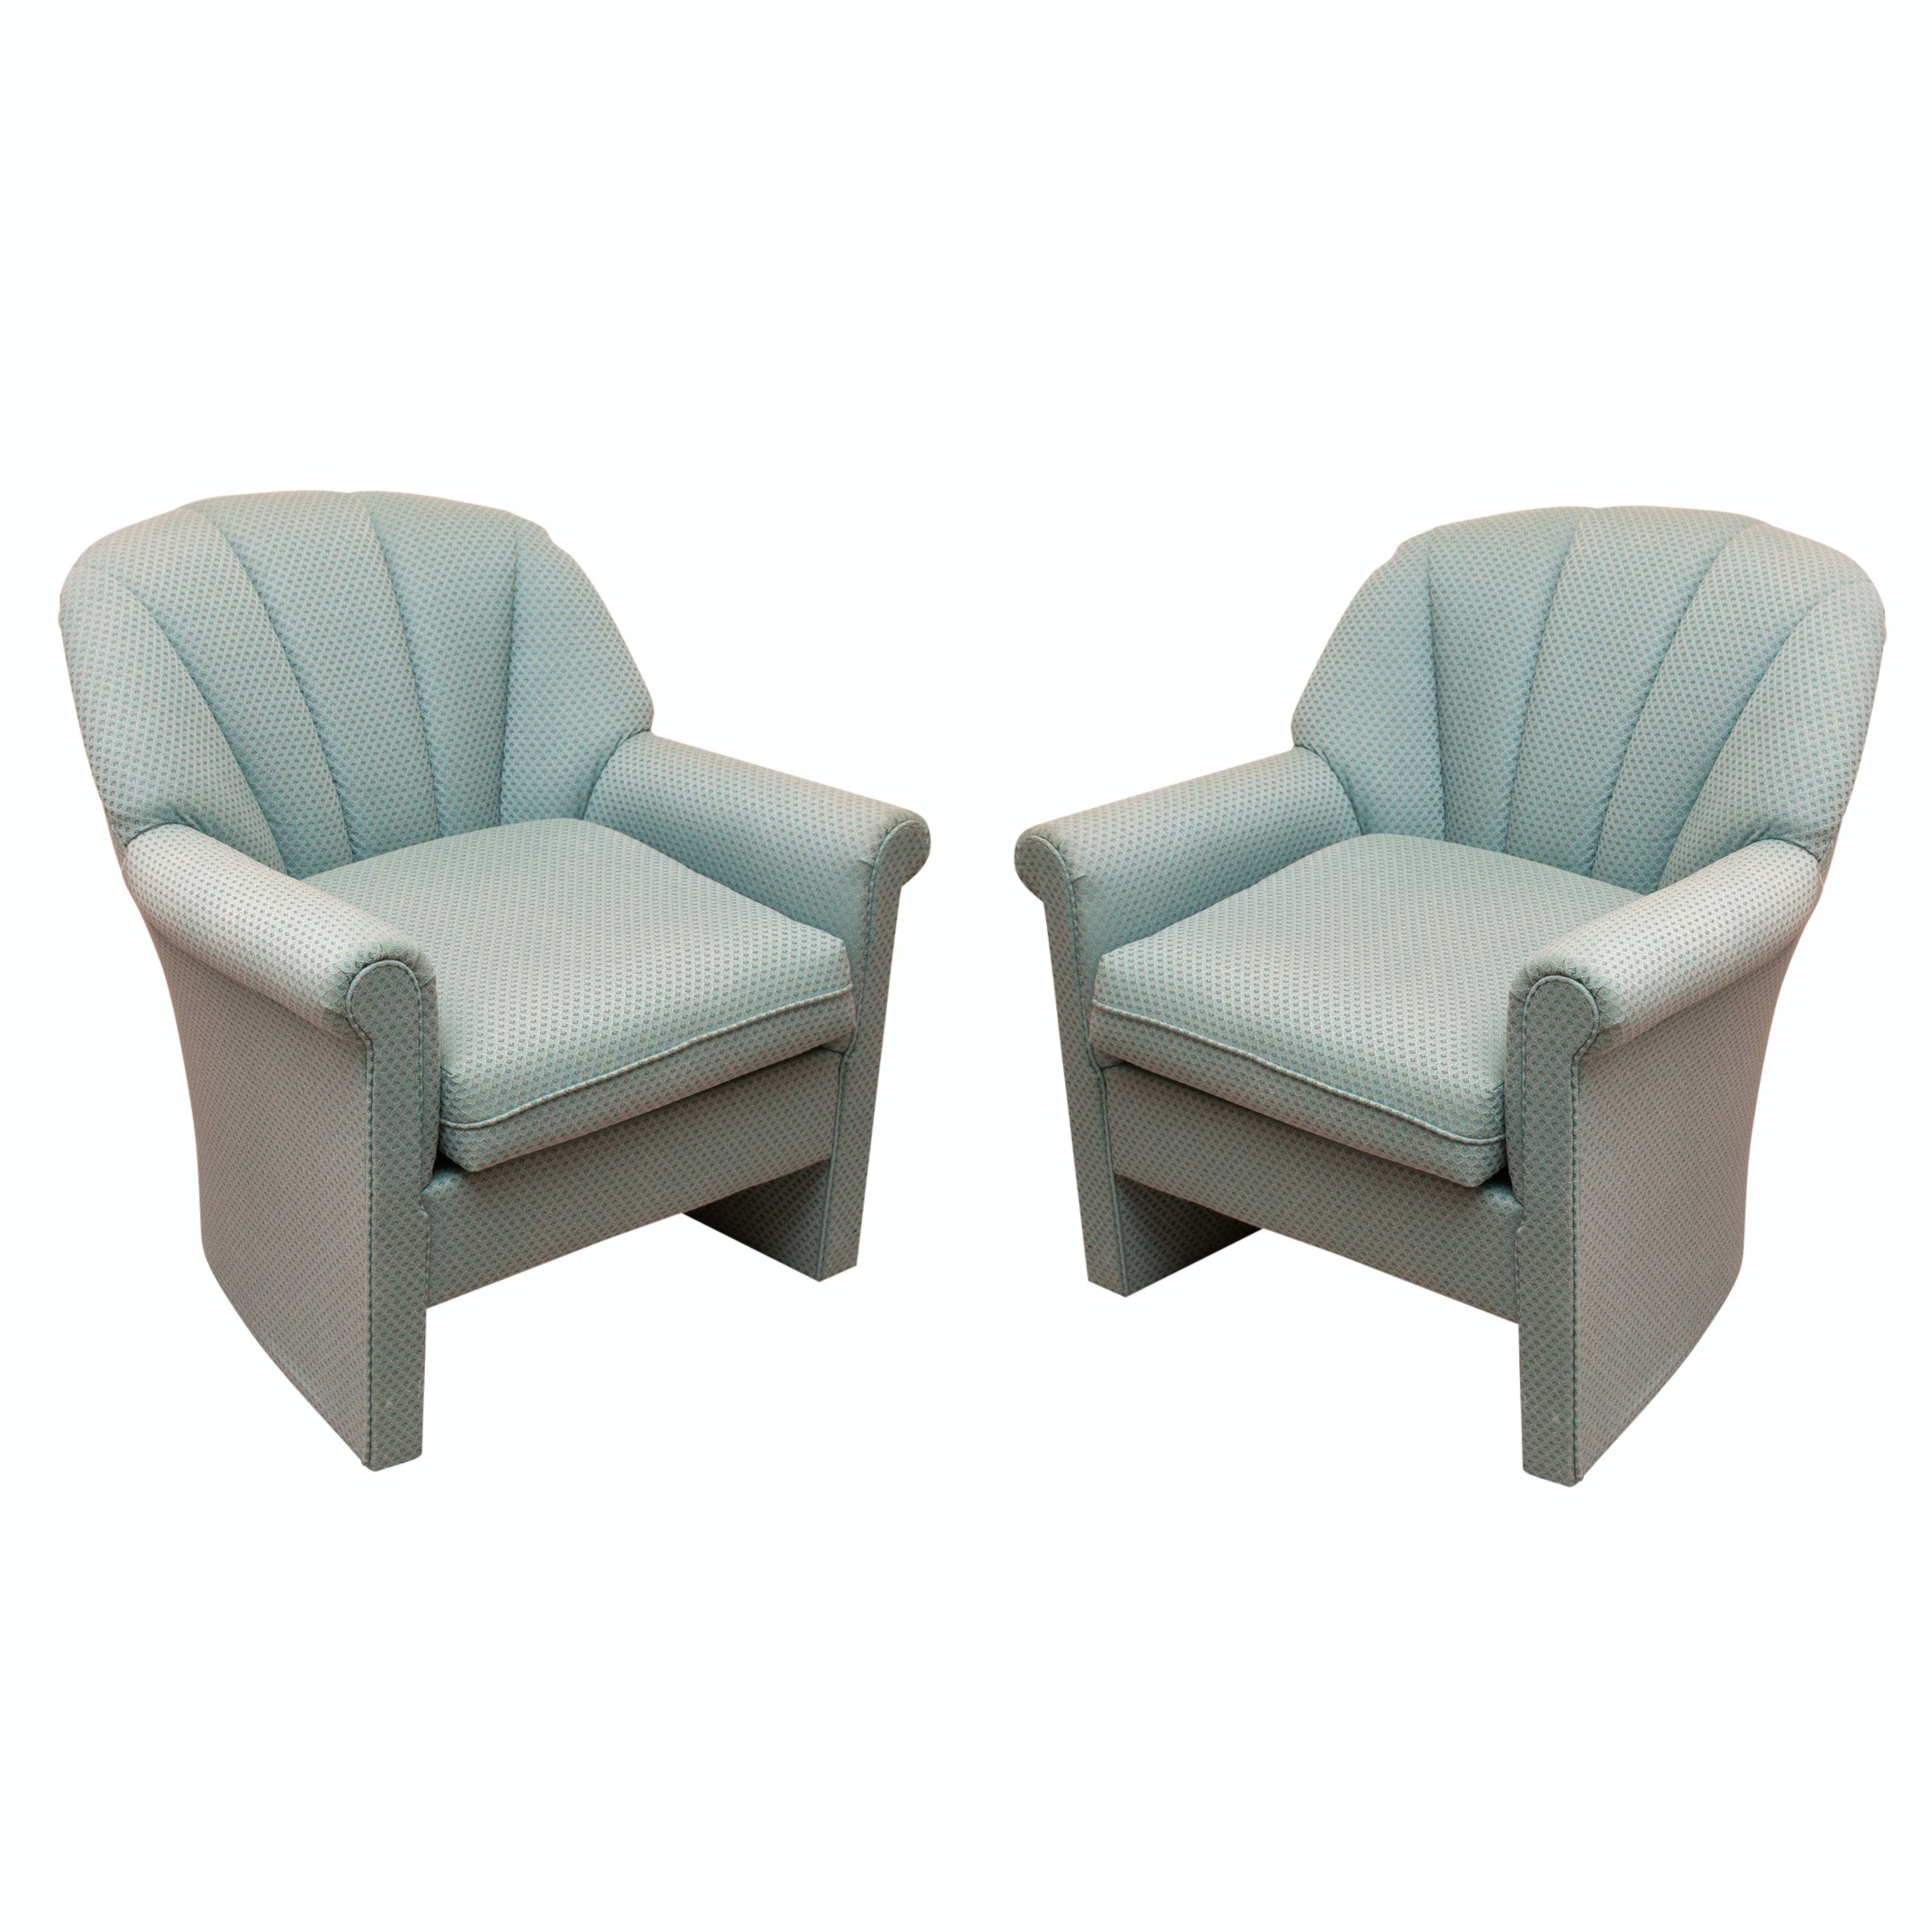 Two Sea Green Upholstered Armchairs